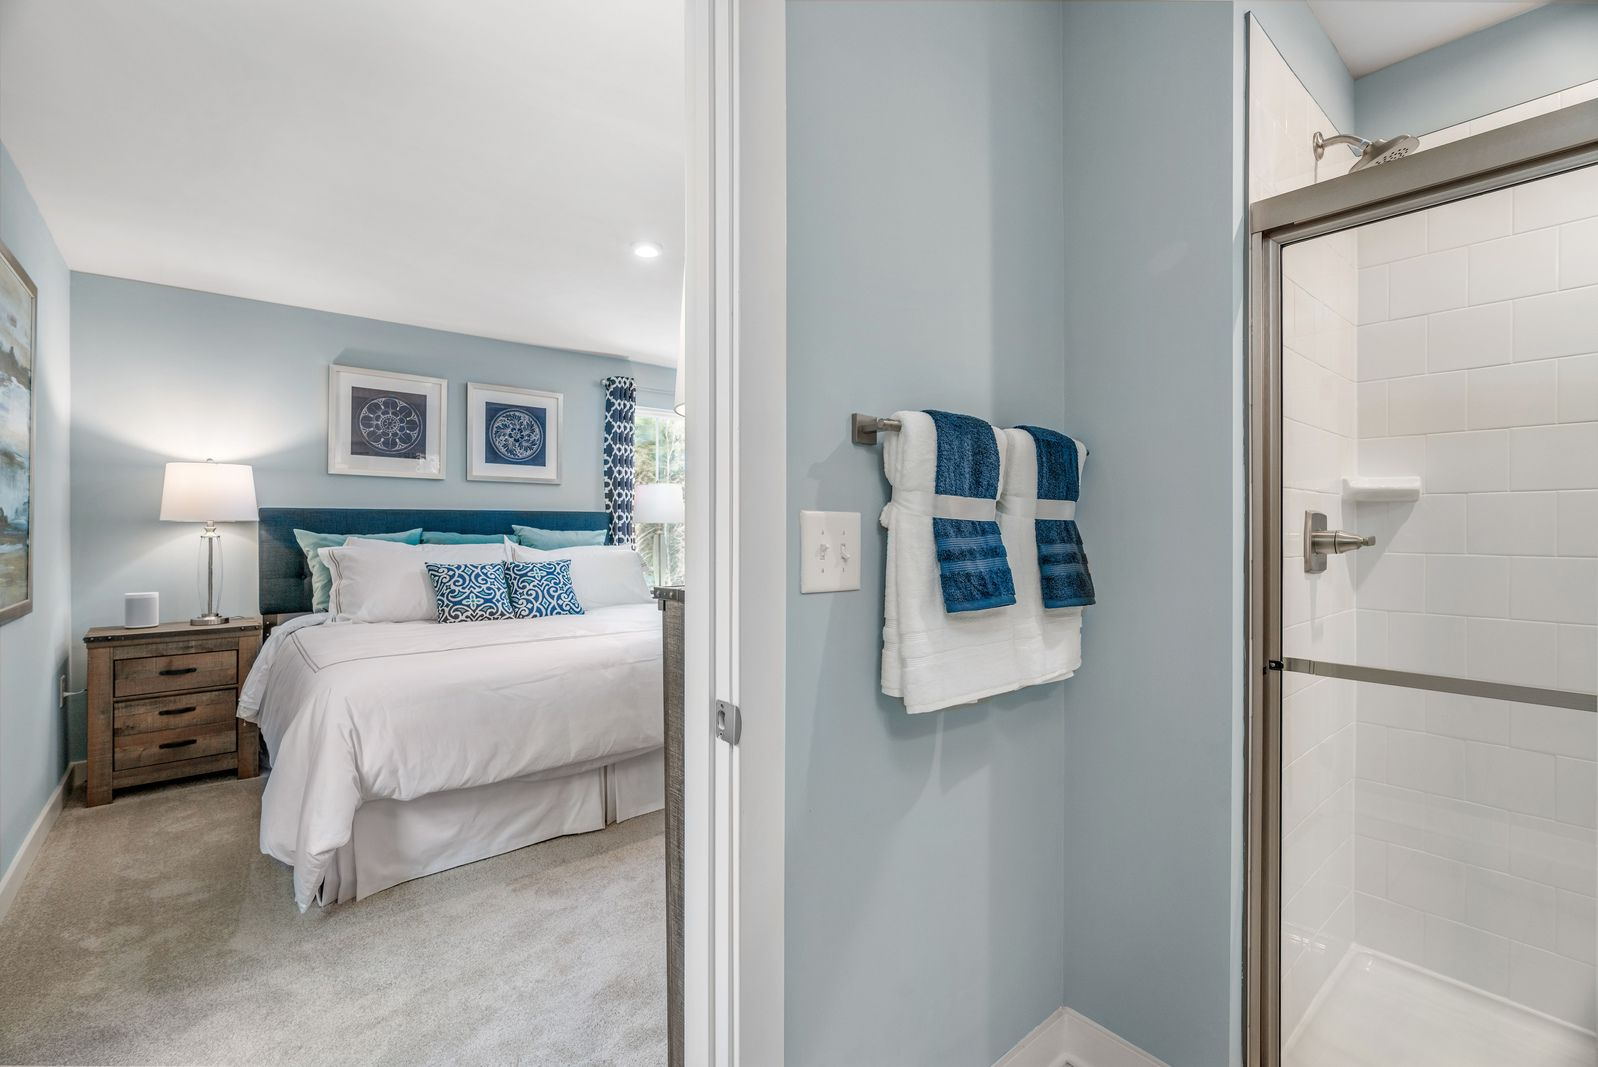 Bedroom featured in the Aruba Bay By Ryan Homes in Wilmington-Newark, MD